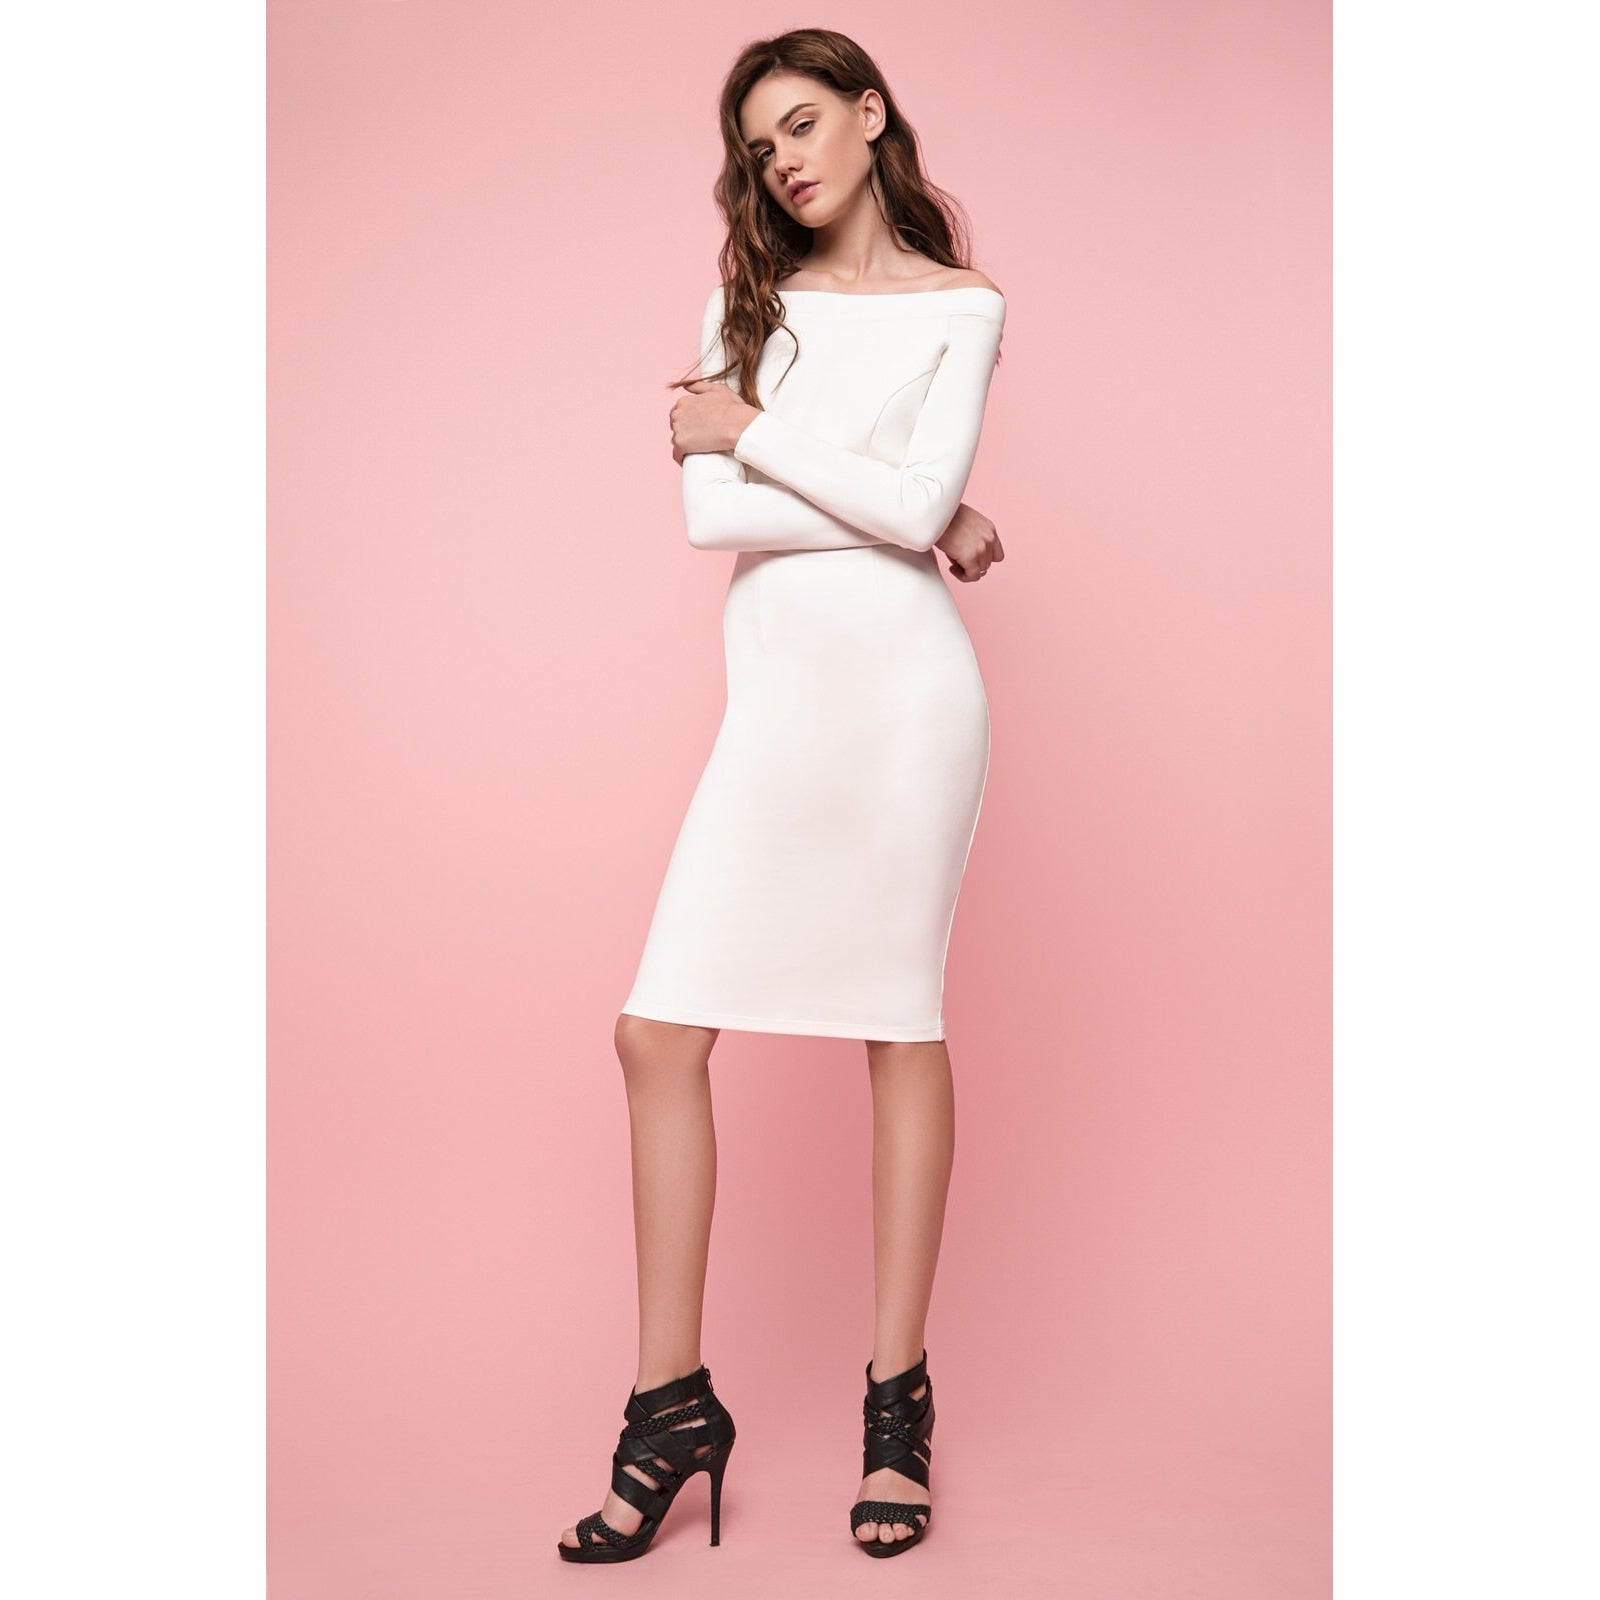 White Bodycon Dress The Way I Feel-OVER THE SEA-HOUSE of BOTTA